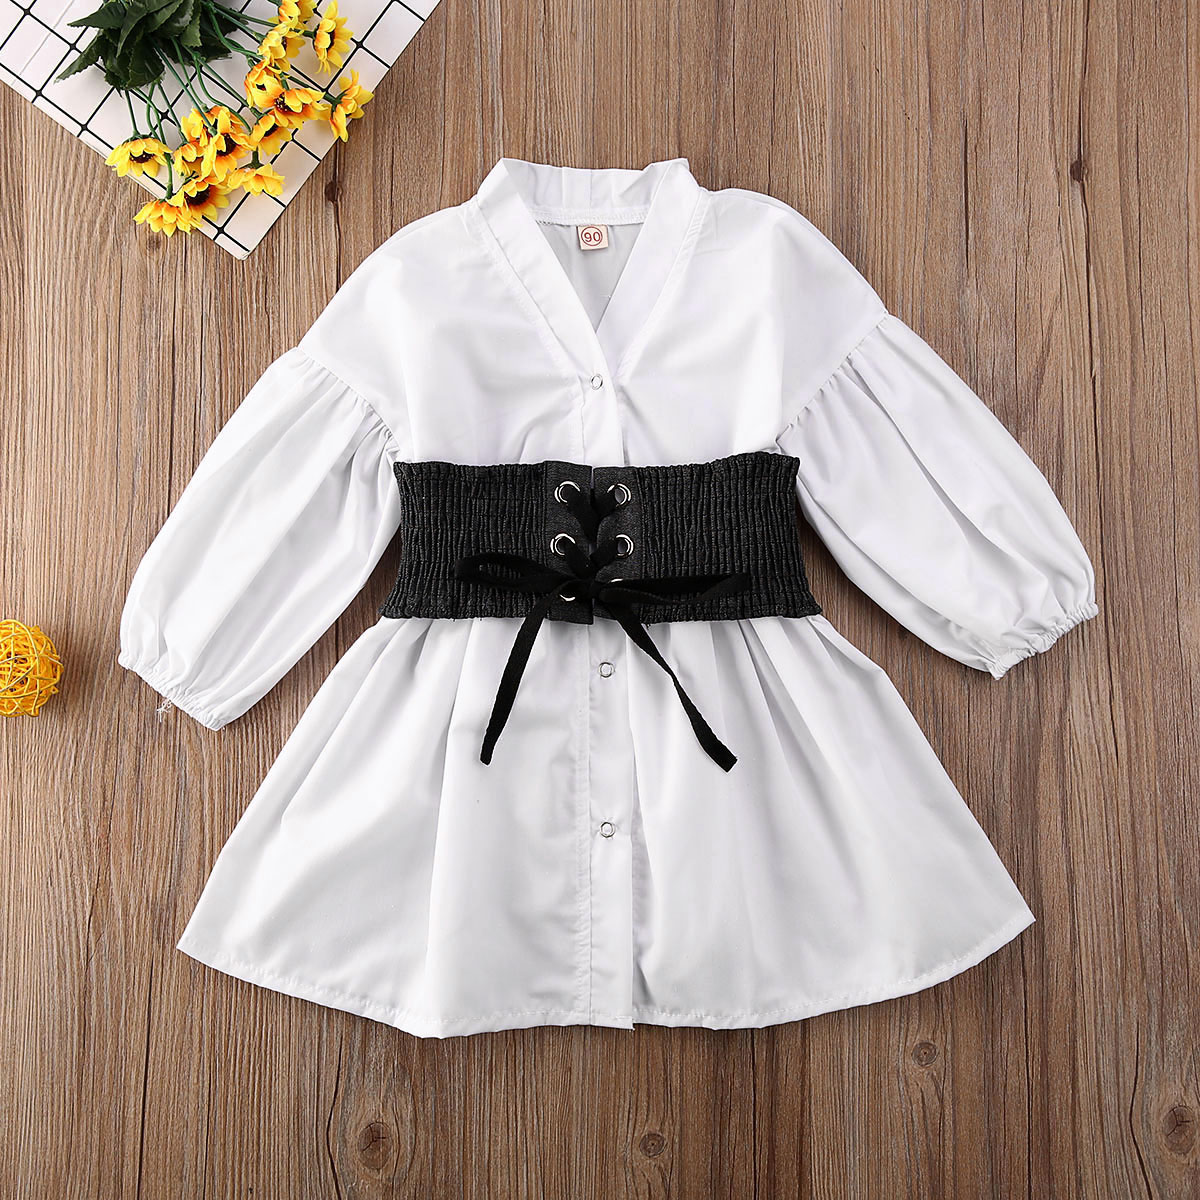 Pudcoco Toddler Baby Girl Clothes Solid Color Puff Long Sleeve Shirt Tops Waist Binding Outfit Clothes 1-6Y